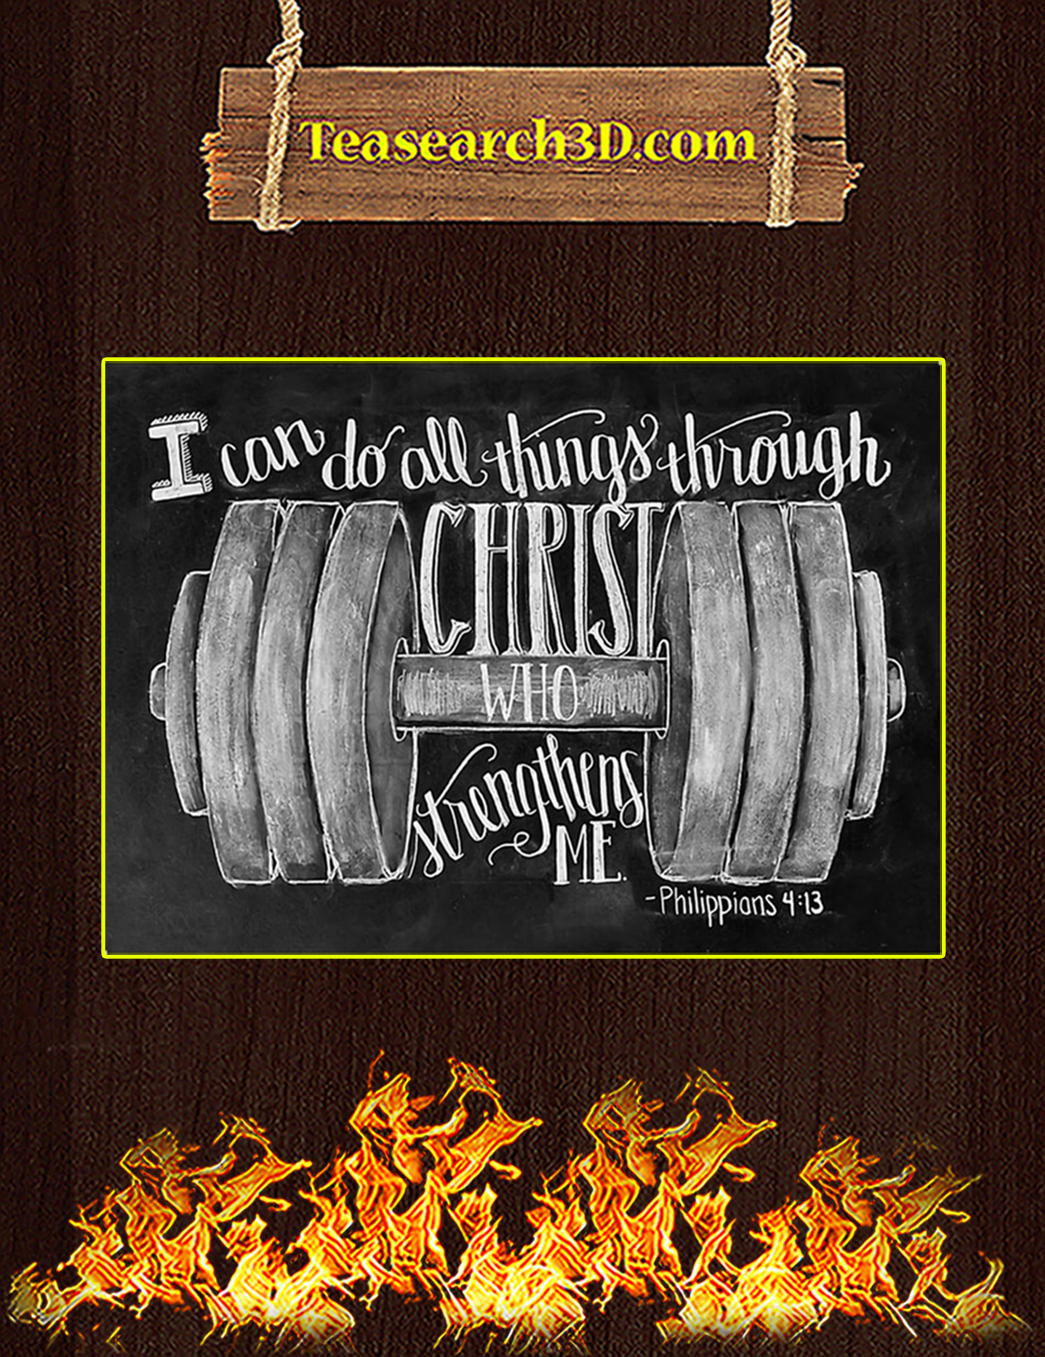 Fitness I can do all things through christ who strengthens me poster A1